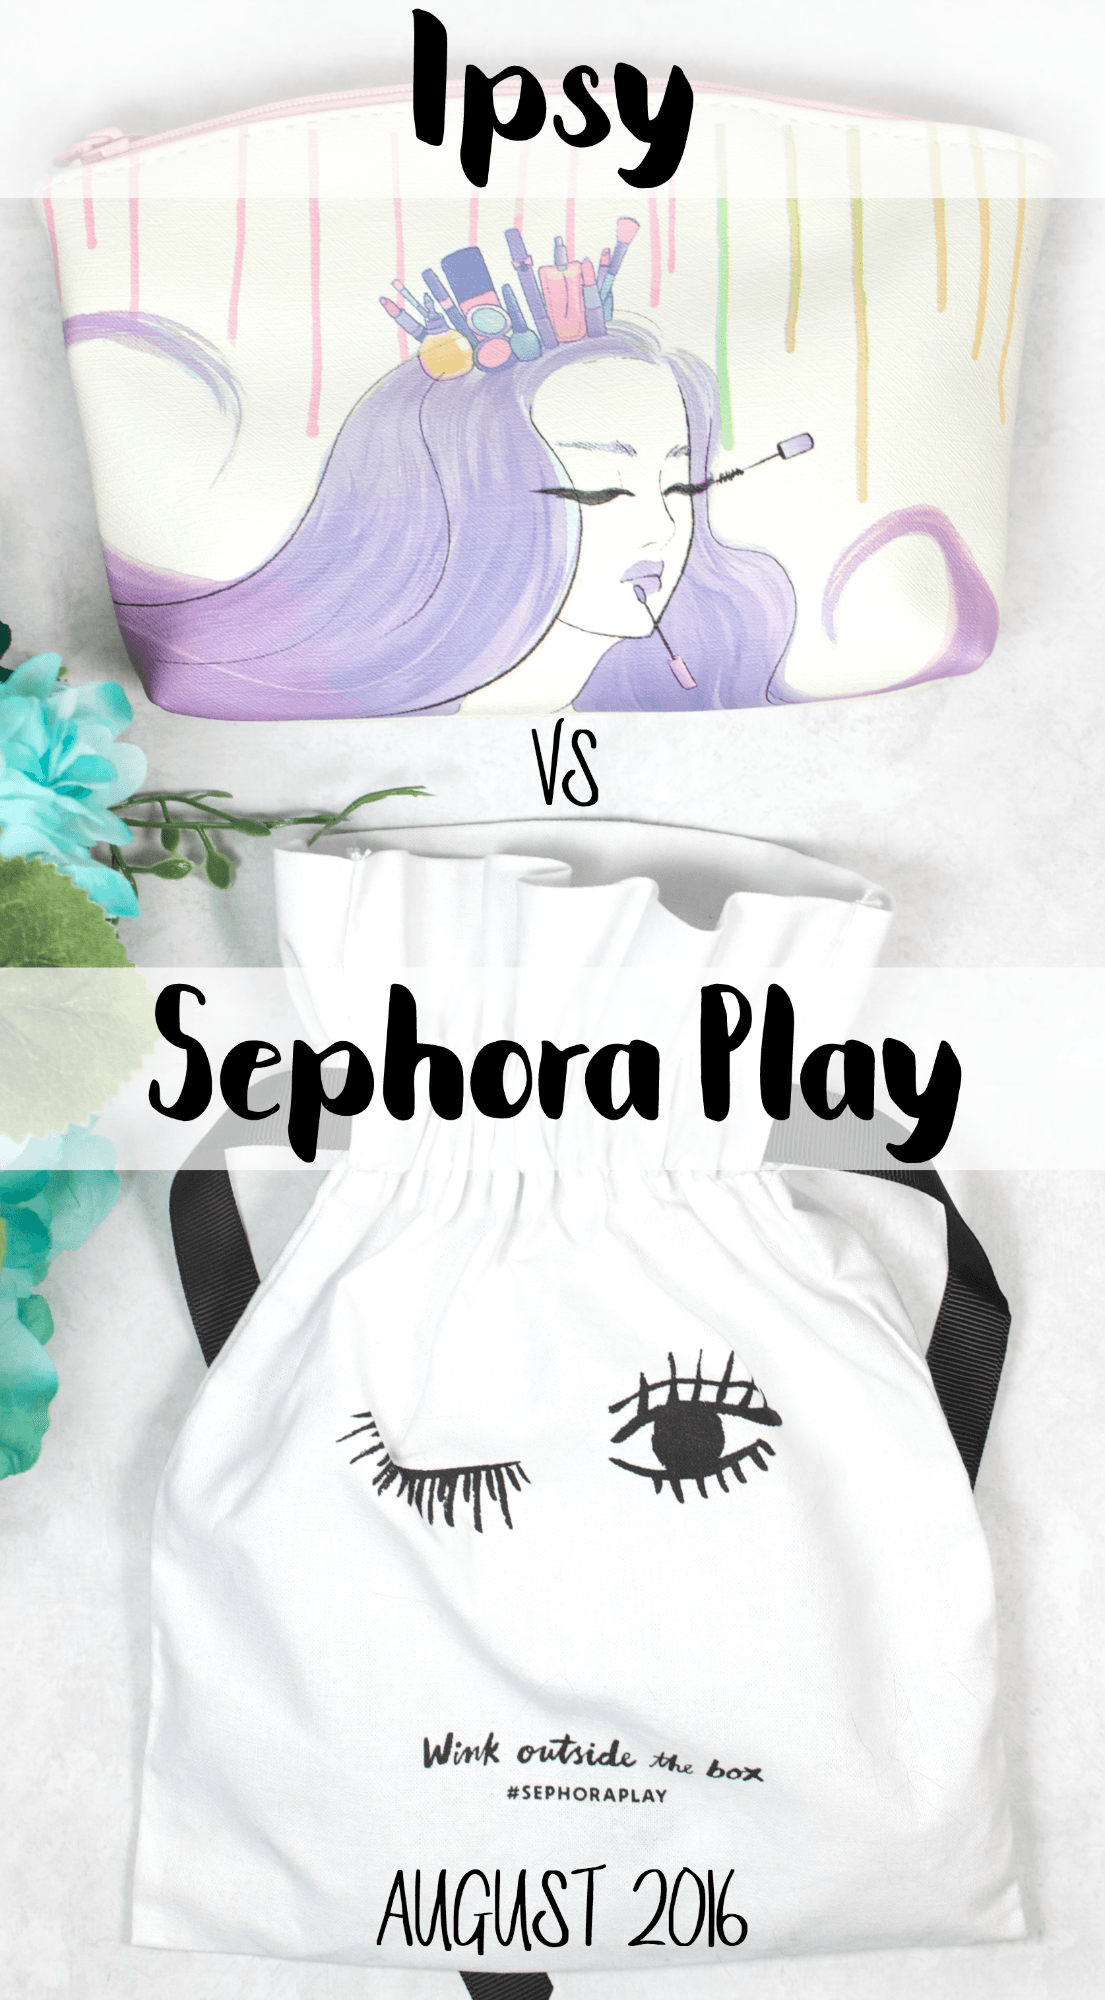 Sephora Subscription Box Reviews: Sephora Play, Sephora Play Box